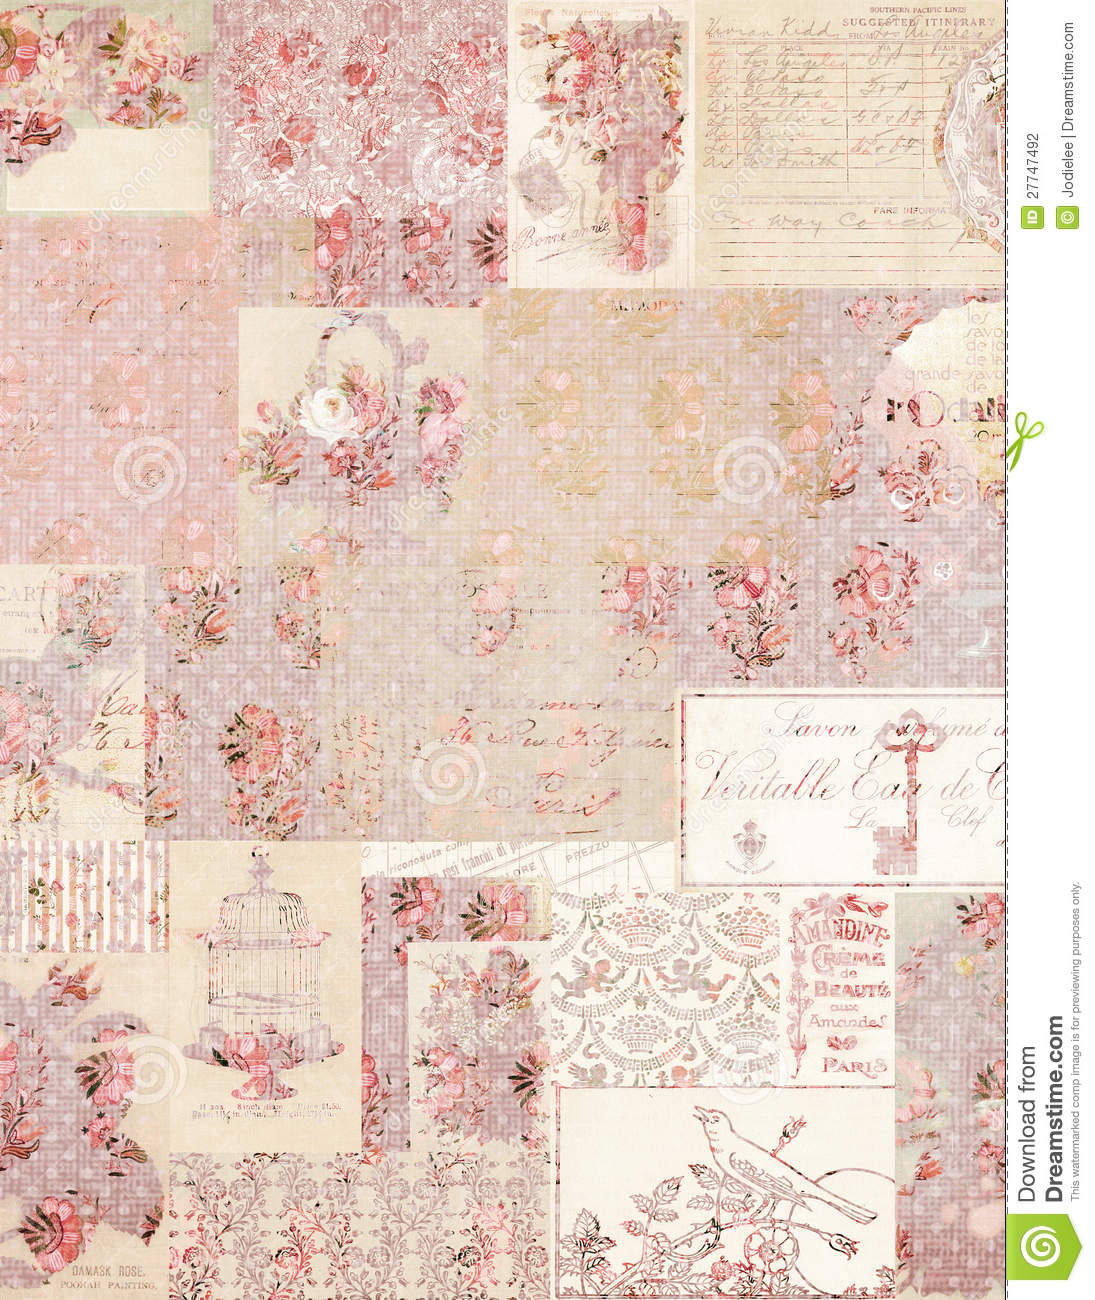 Vintage Floral Collage Background Stock Photography ...